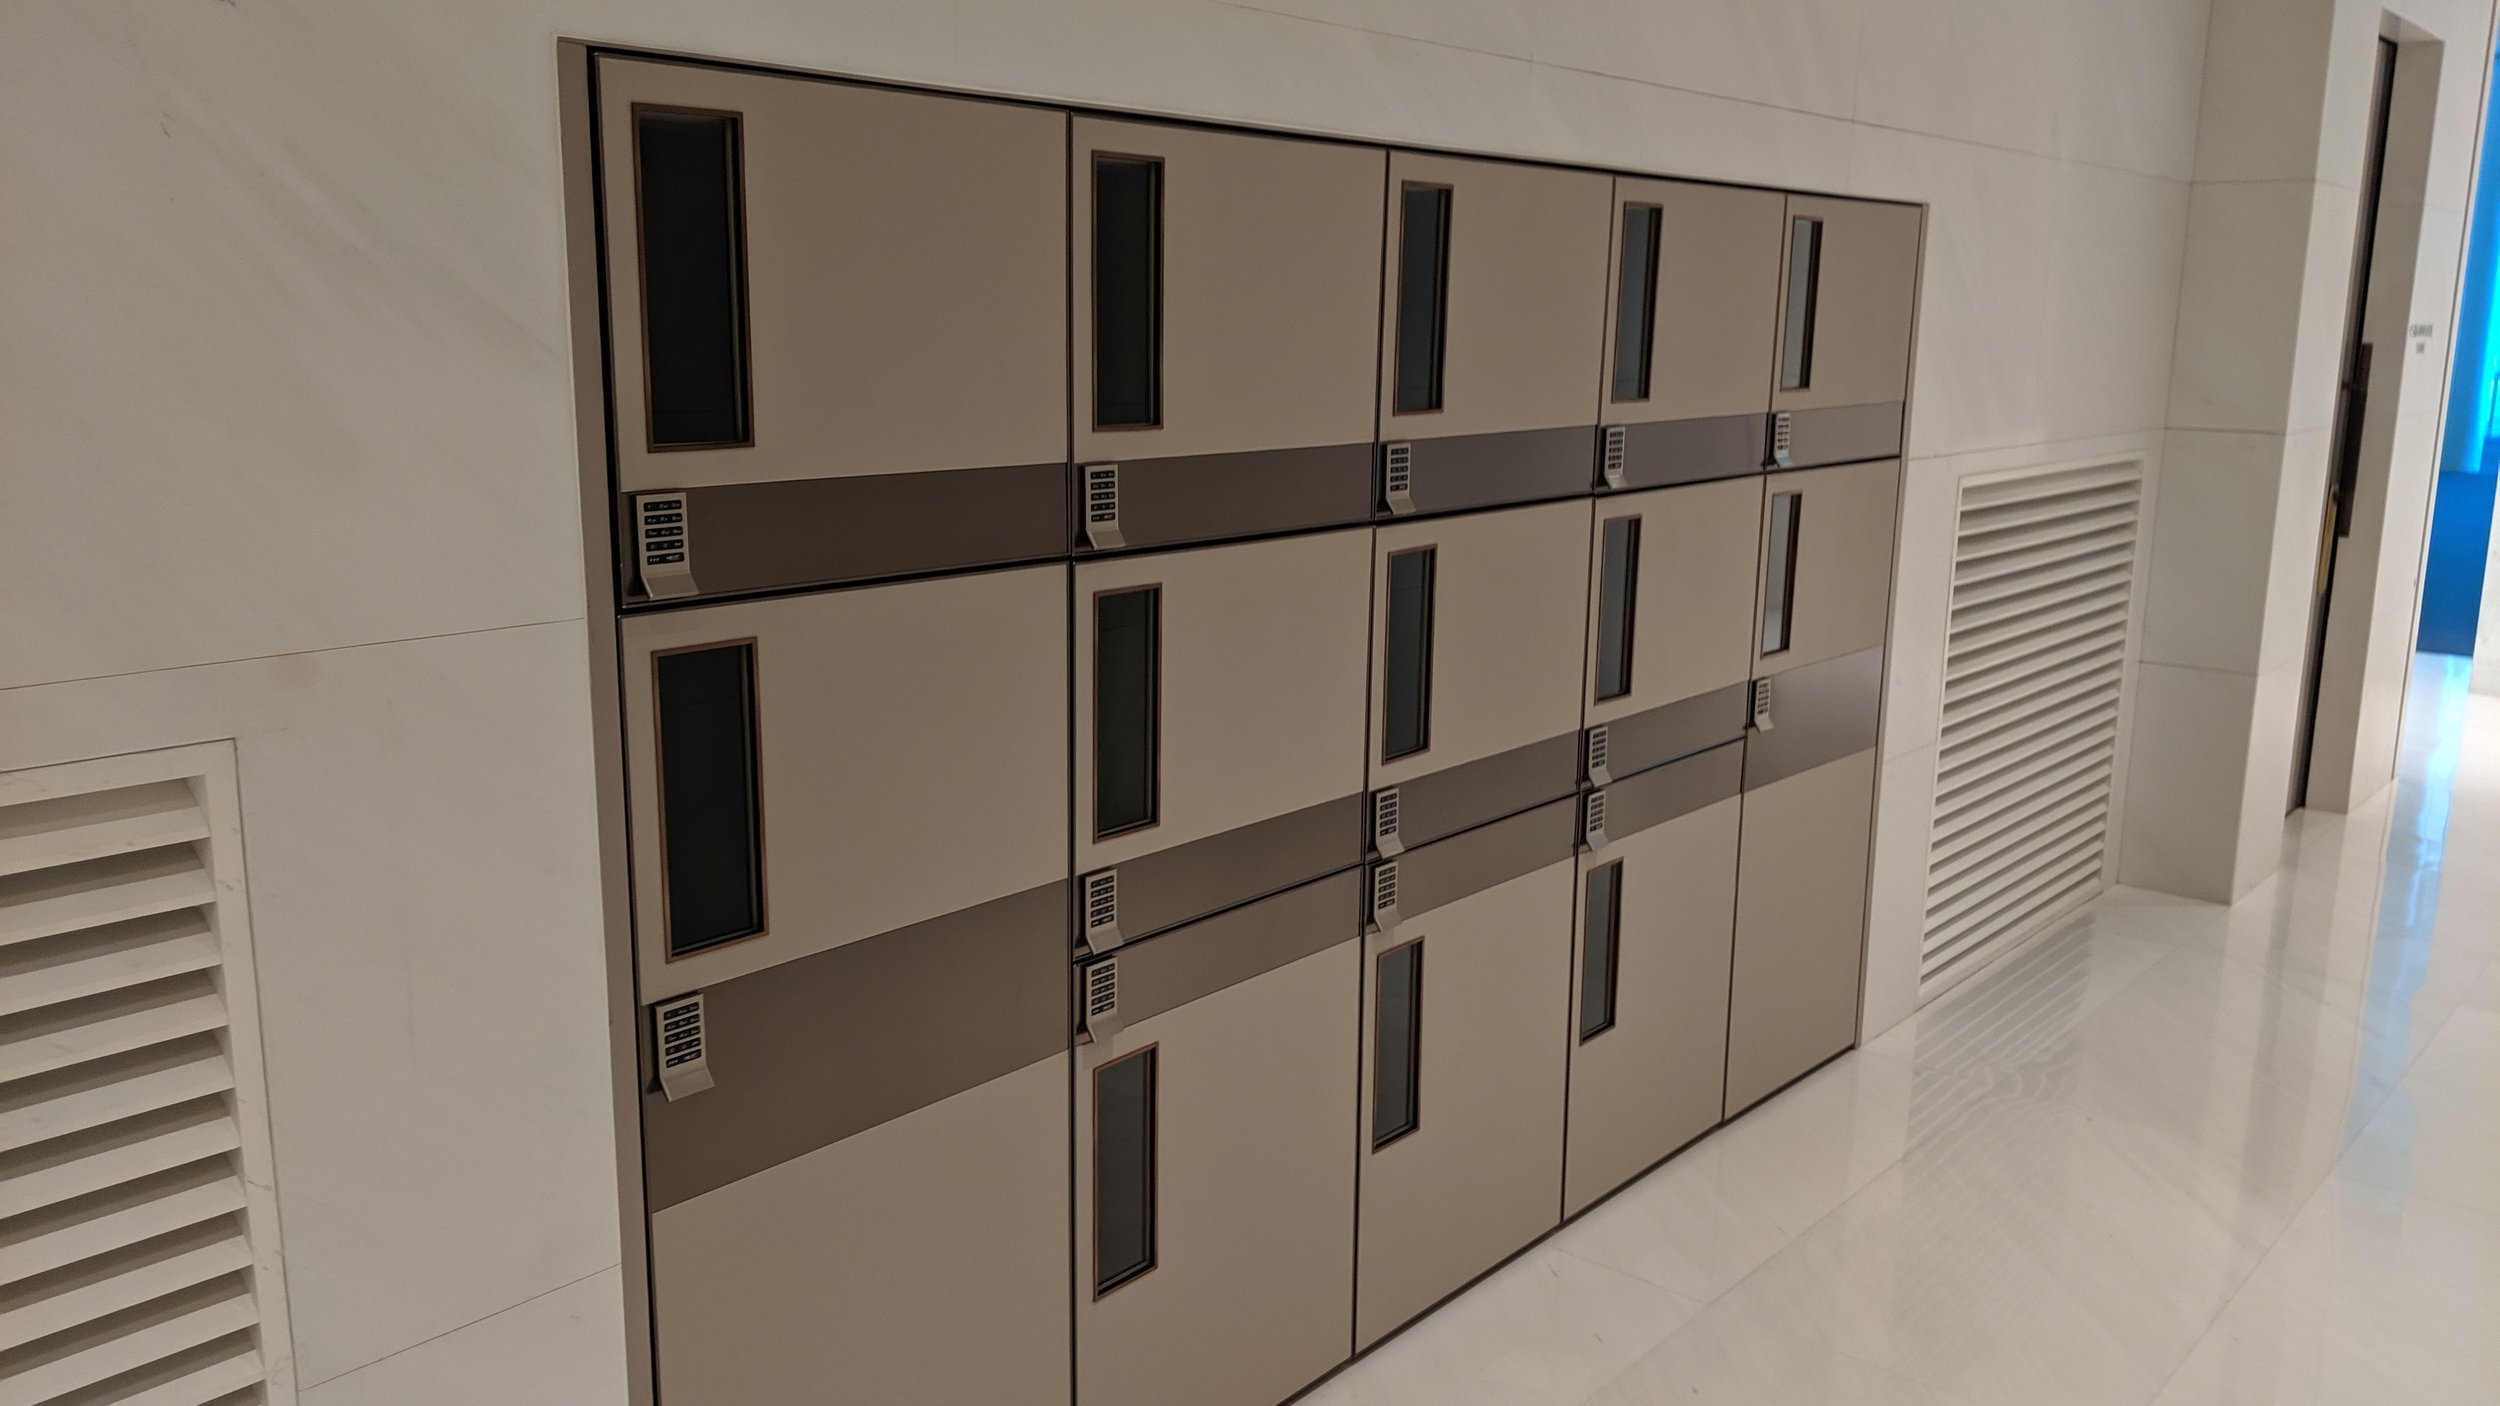 KAL-First-Class-Lounge-ICN-Lockers.jpg